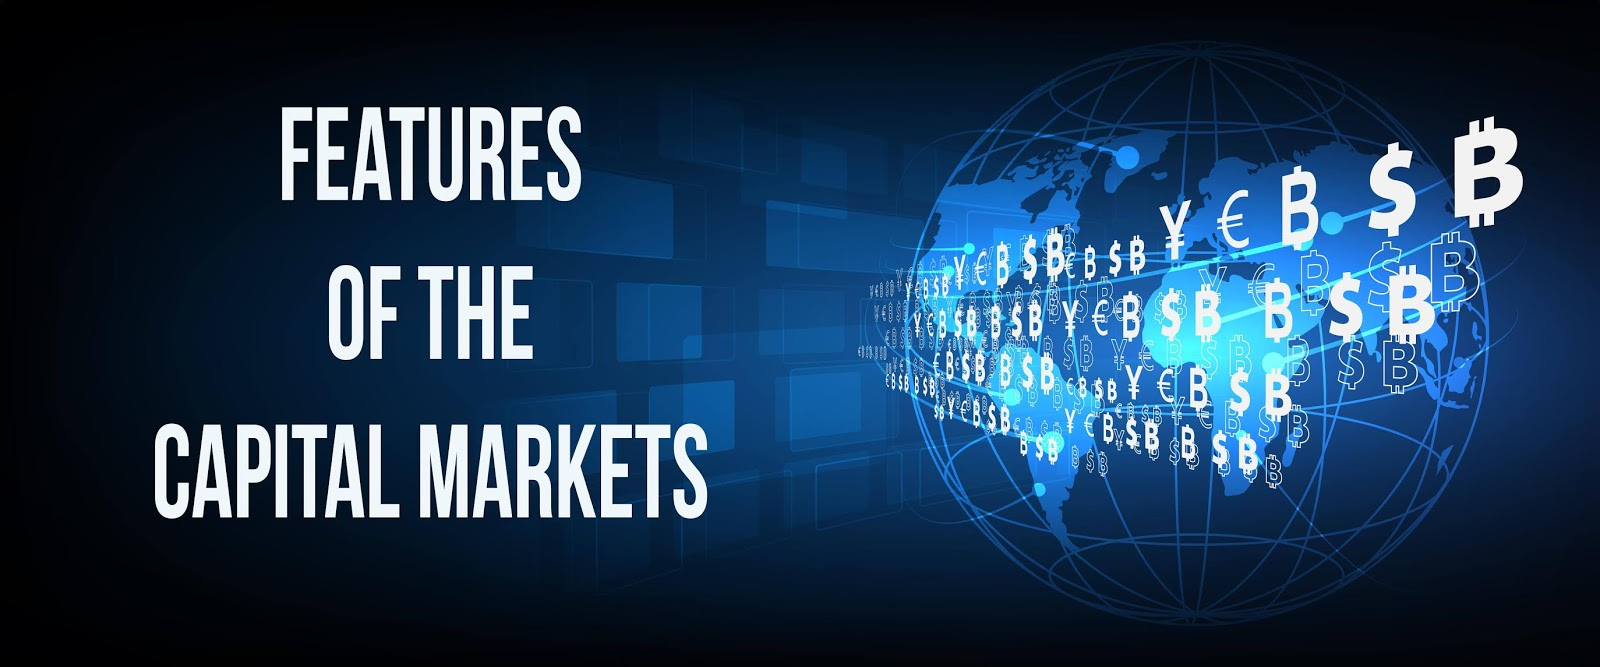 Capital Markets with a rendition of various currencies